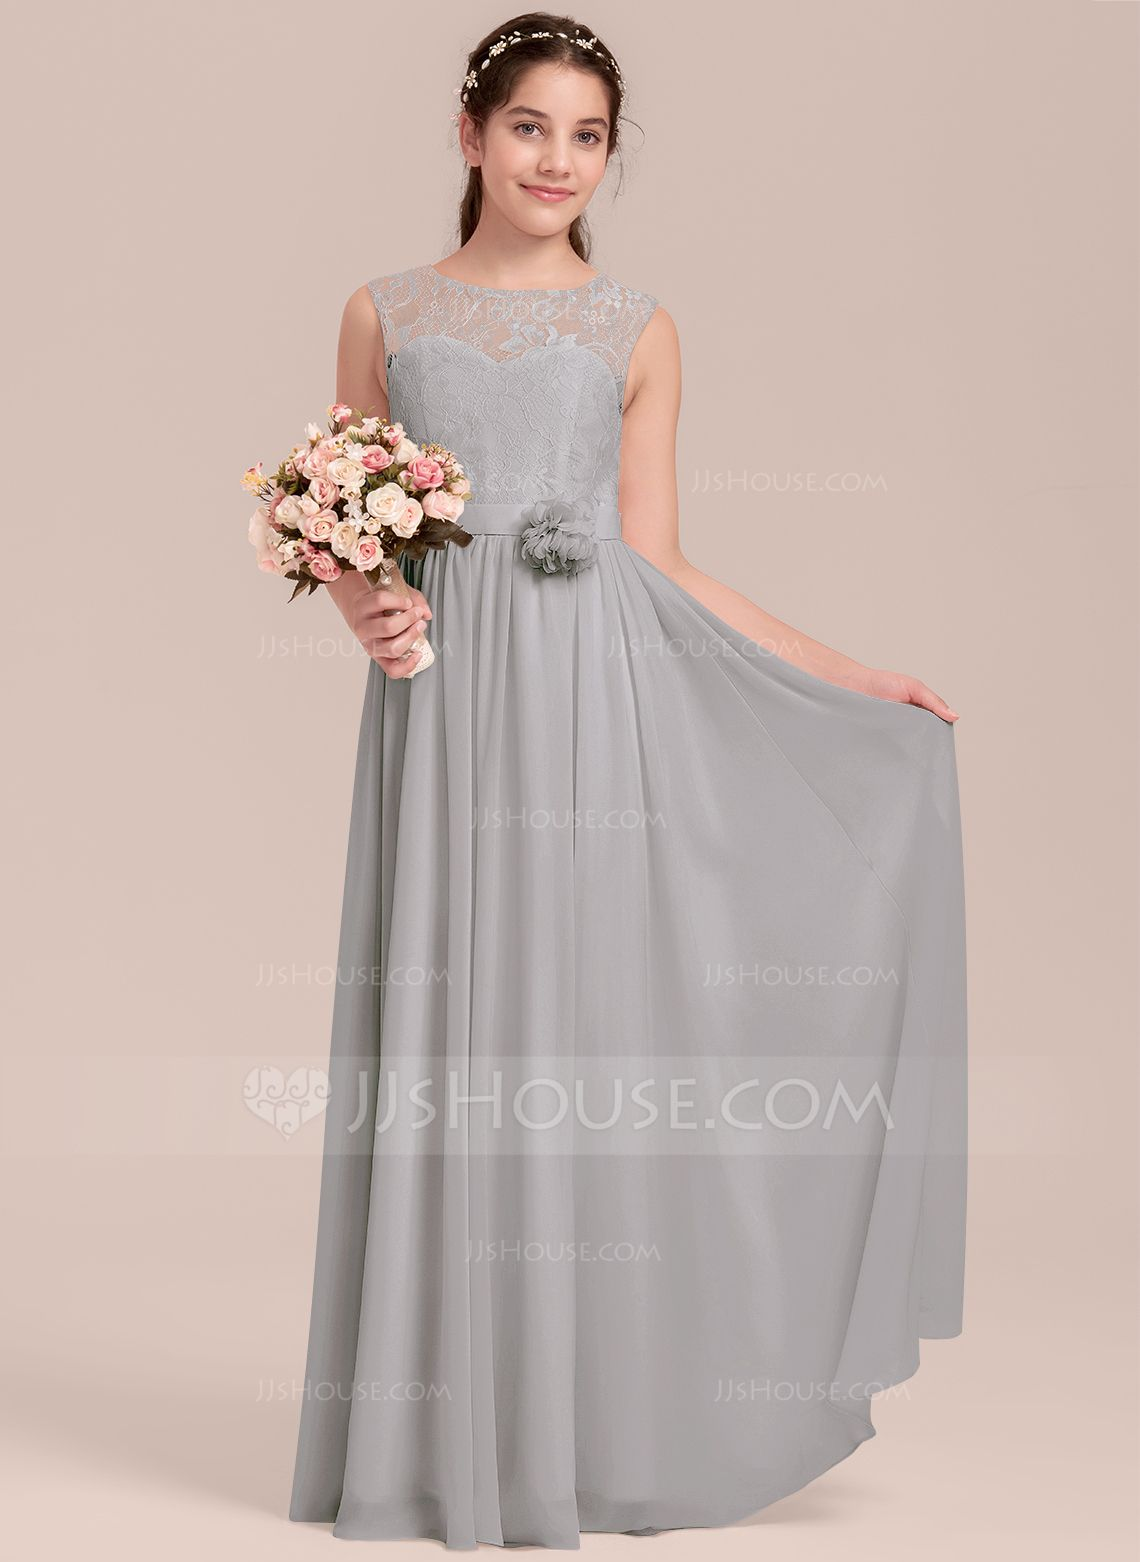 be61aec80f A-Line Princess Scoop Neck Floor-Length Chiffon Junior Bridesmaid Dress  With Flower(s) (009130624) - Junior Bridesmaid Dresses - JJsHouse